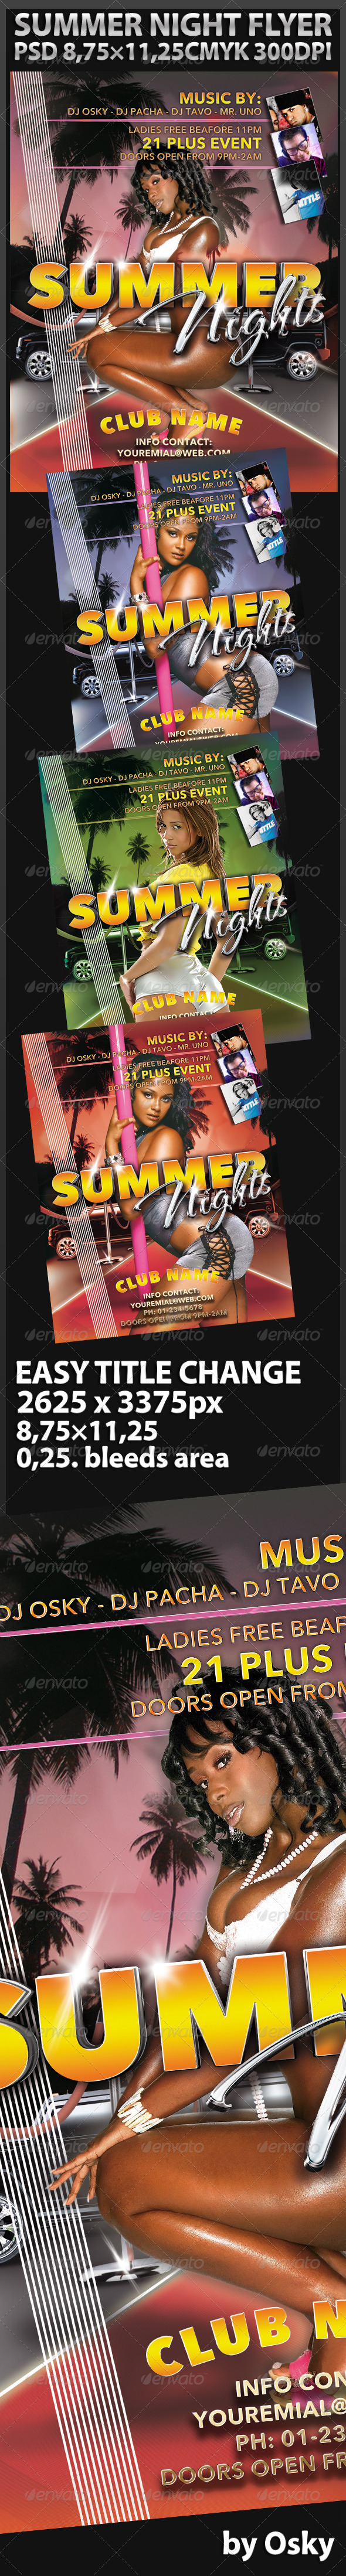 Graphic River Summer Night Party Print Templates -  Flyers  Events  Clubs & Parties 240892